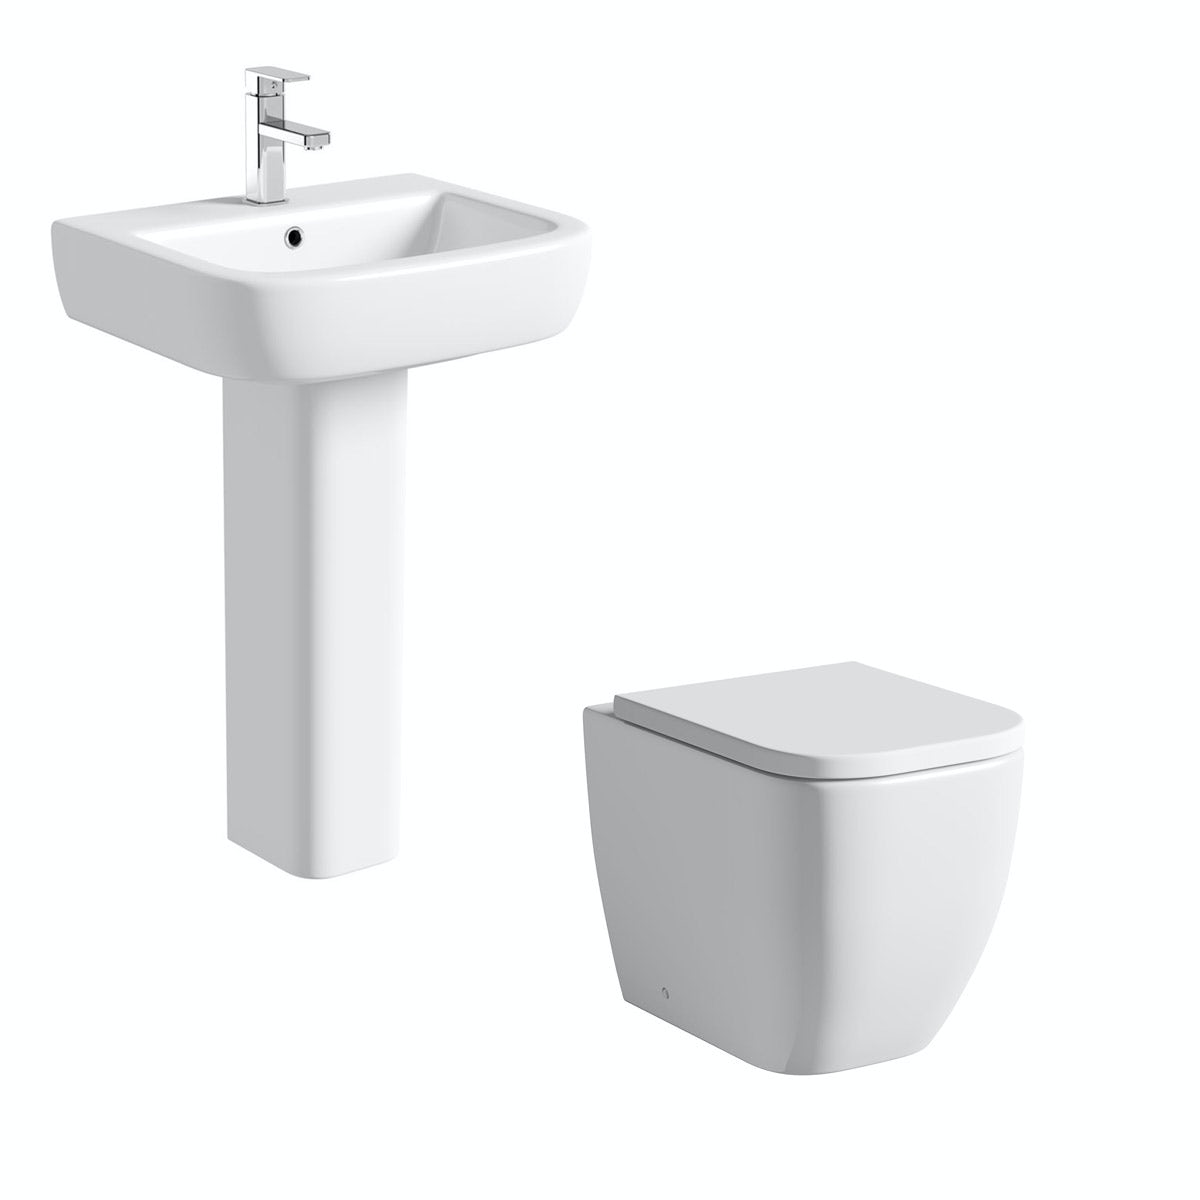 Mode Ellis cloakroom suite with full pedestal basin 560mm